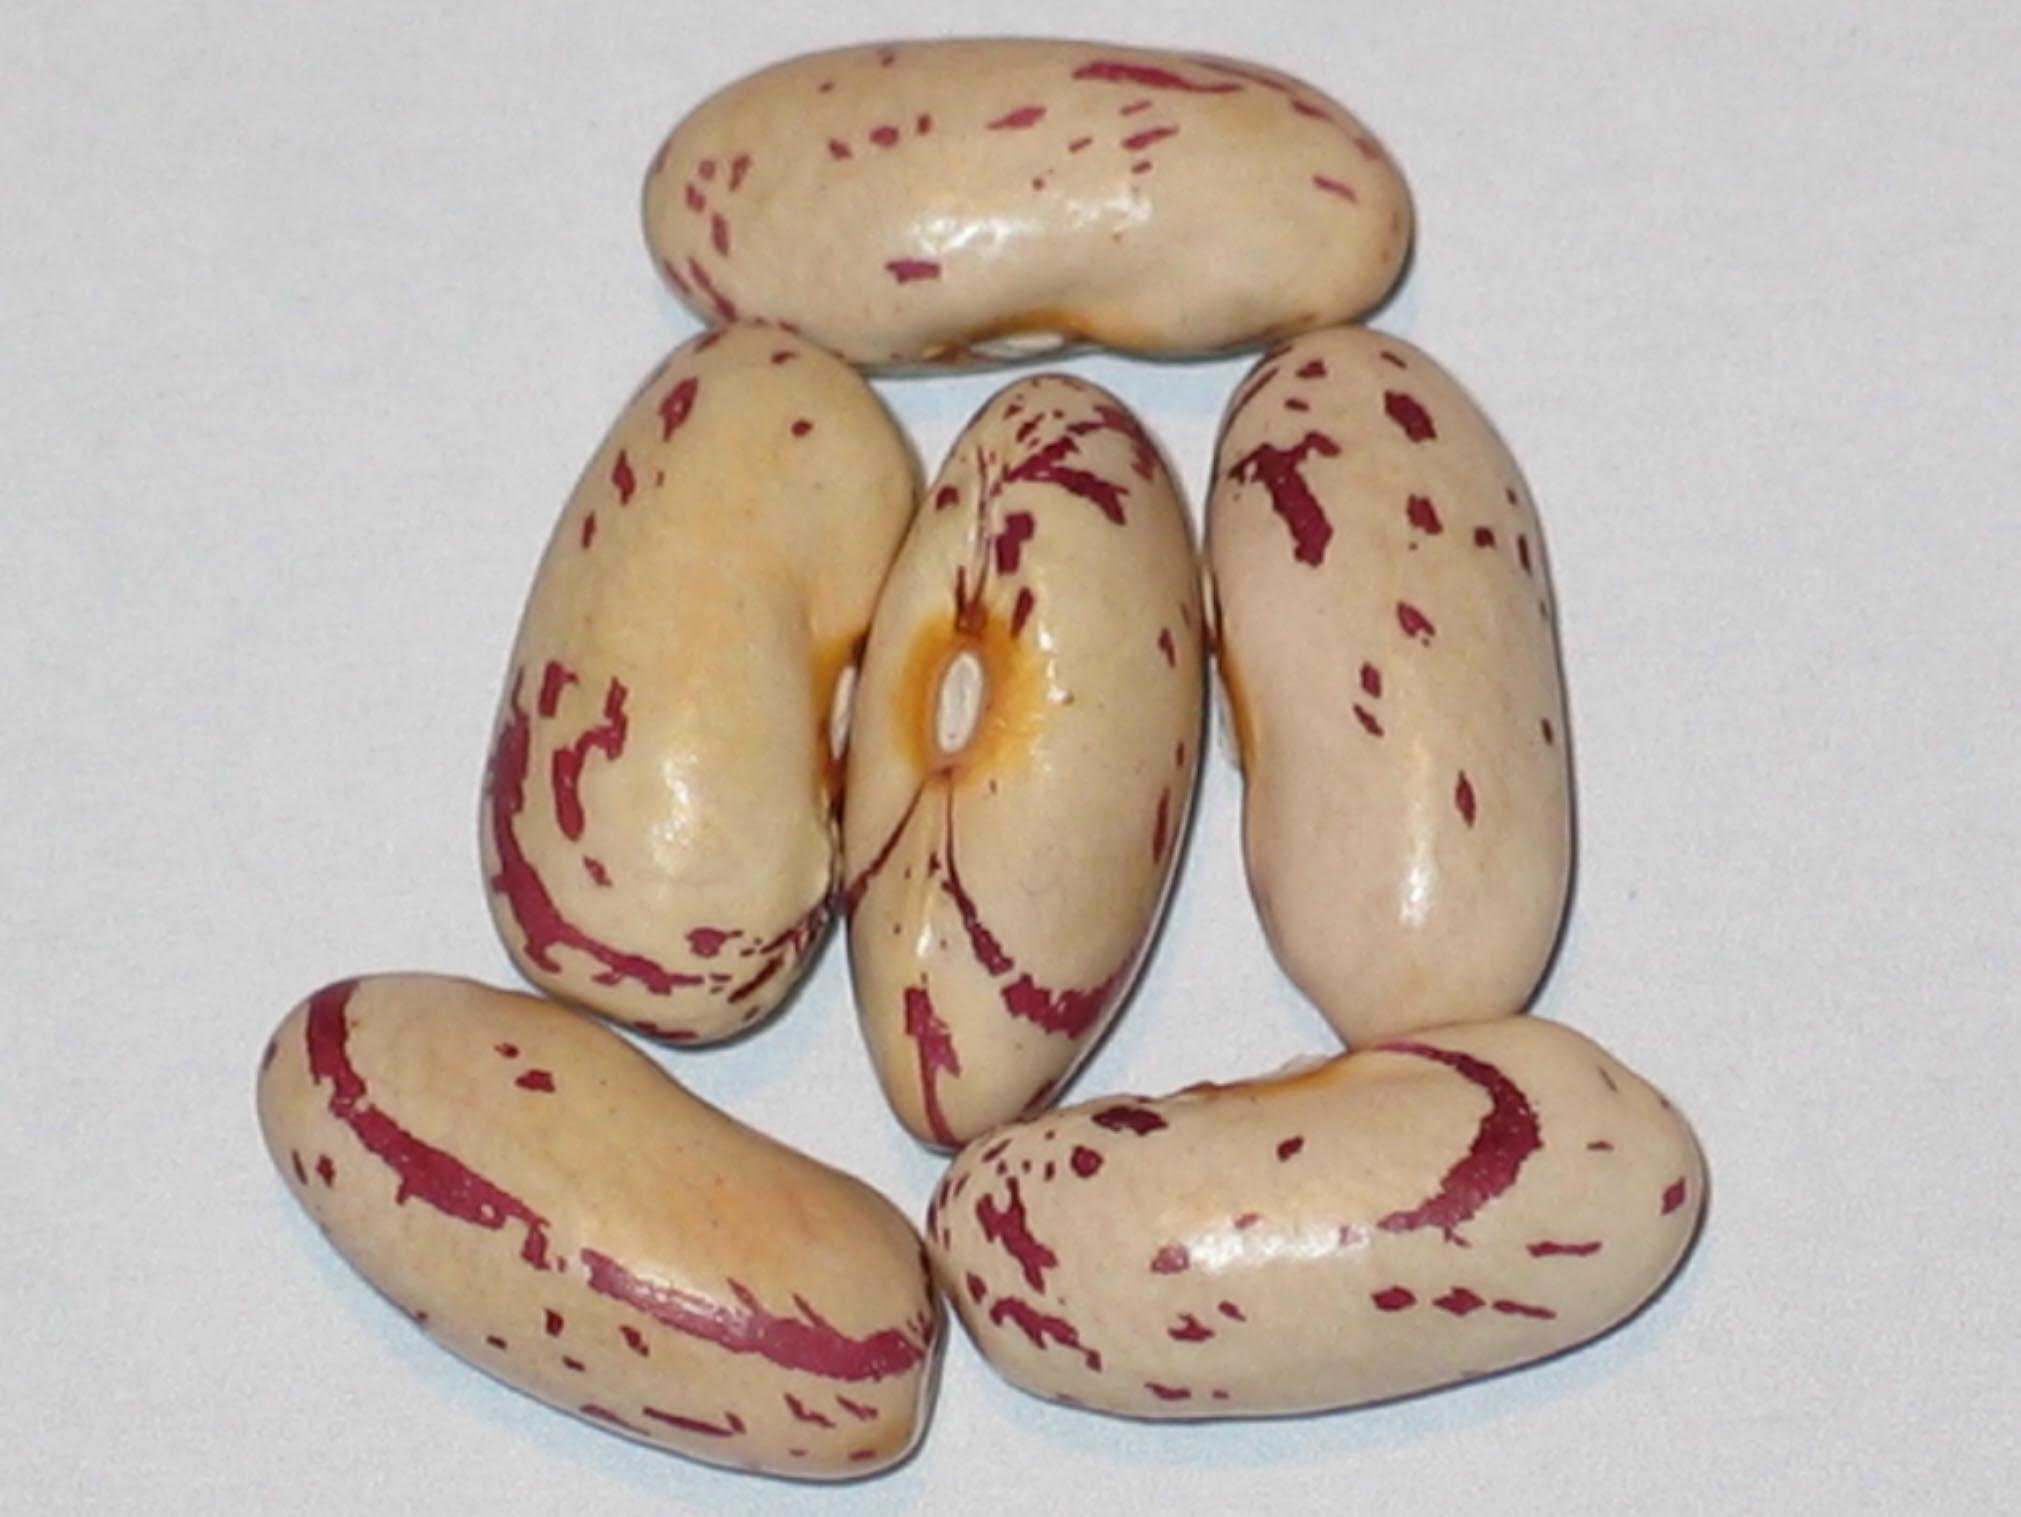 image of Missouri Bill's beans